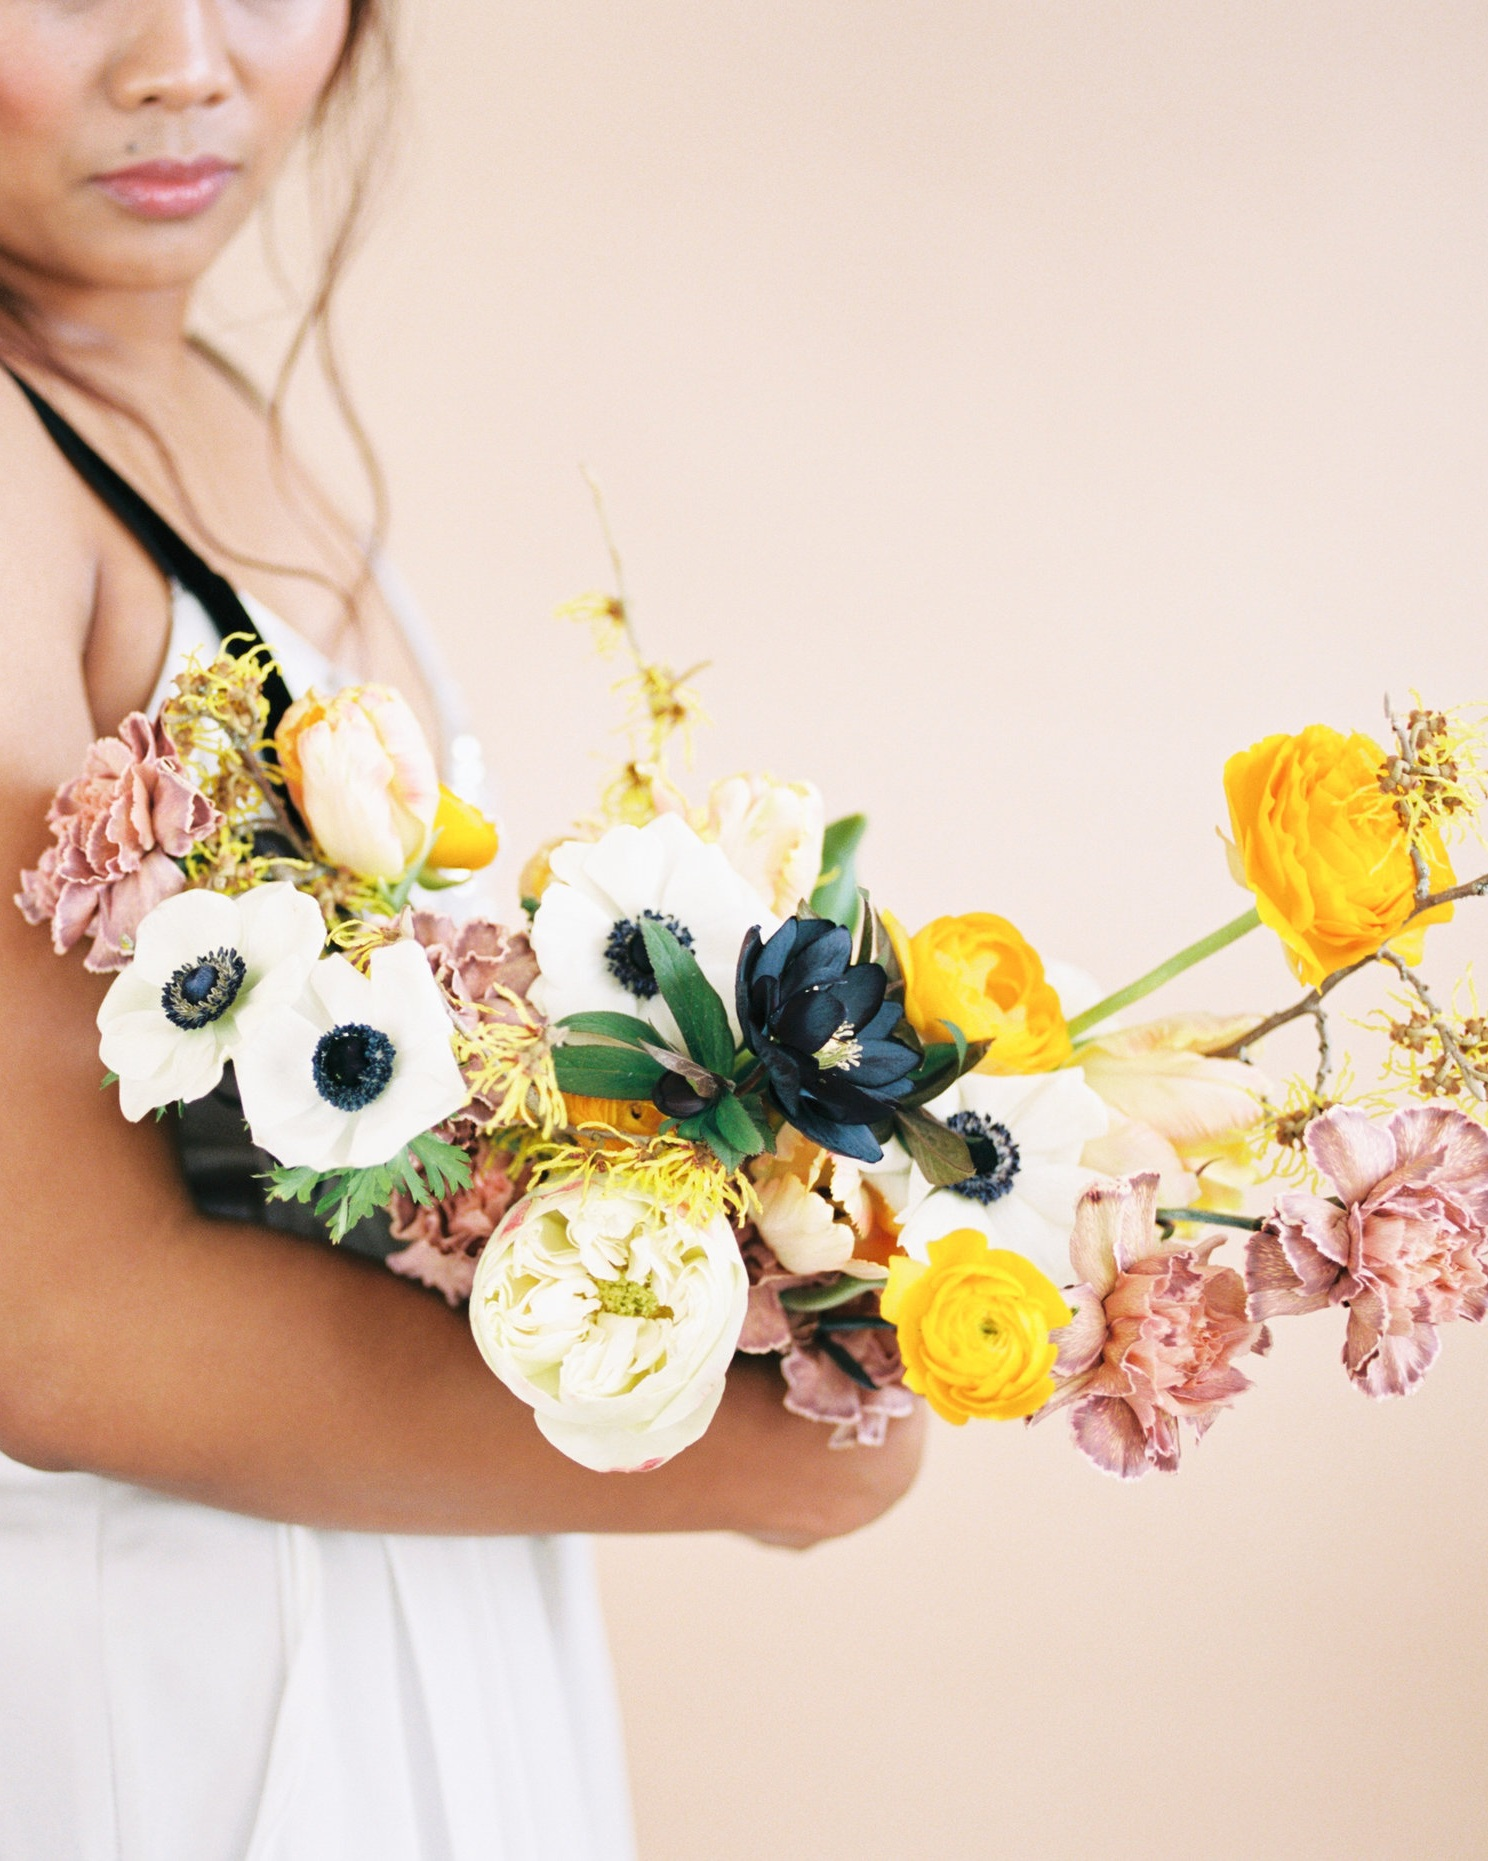 Photo by Mylyn Wood Photography. Florals by Wildflower Portland. Styling by Kamea Events.